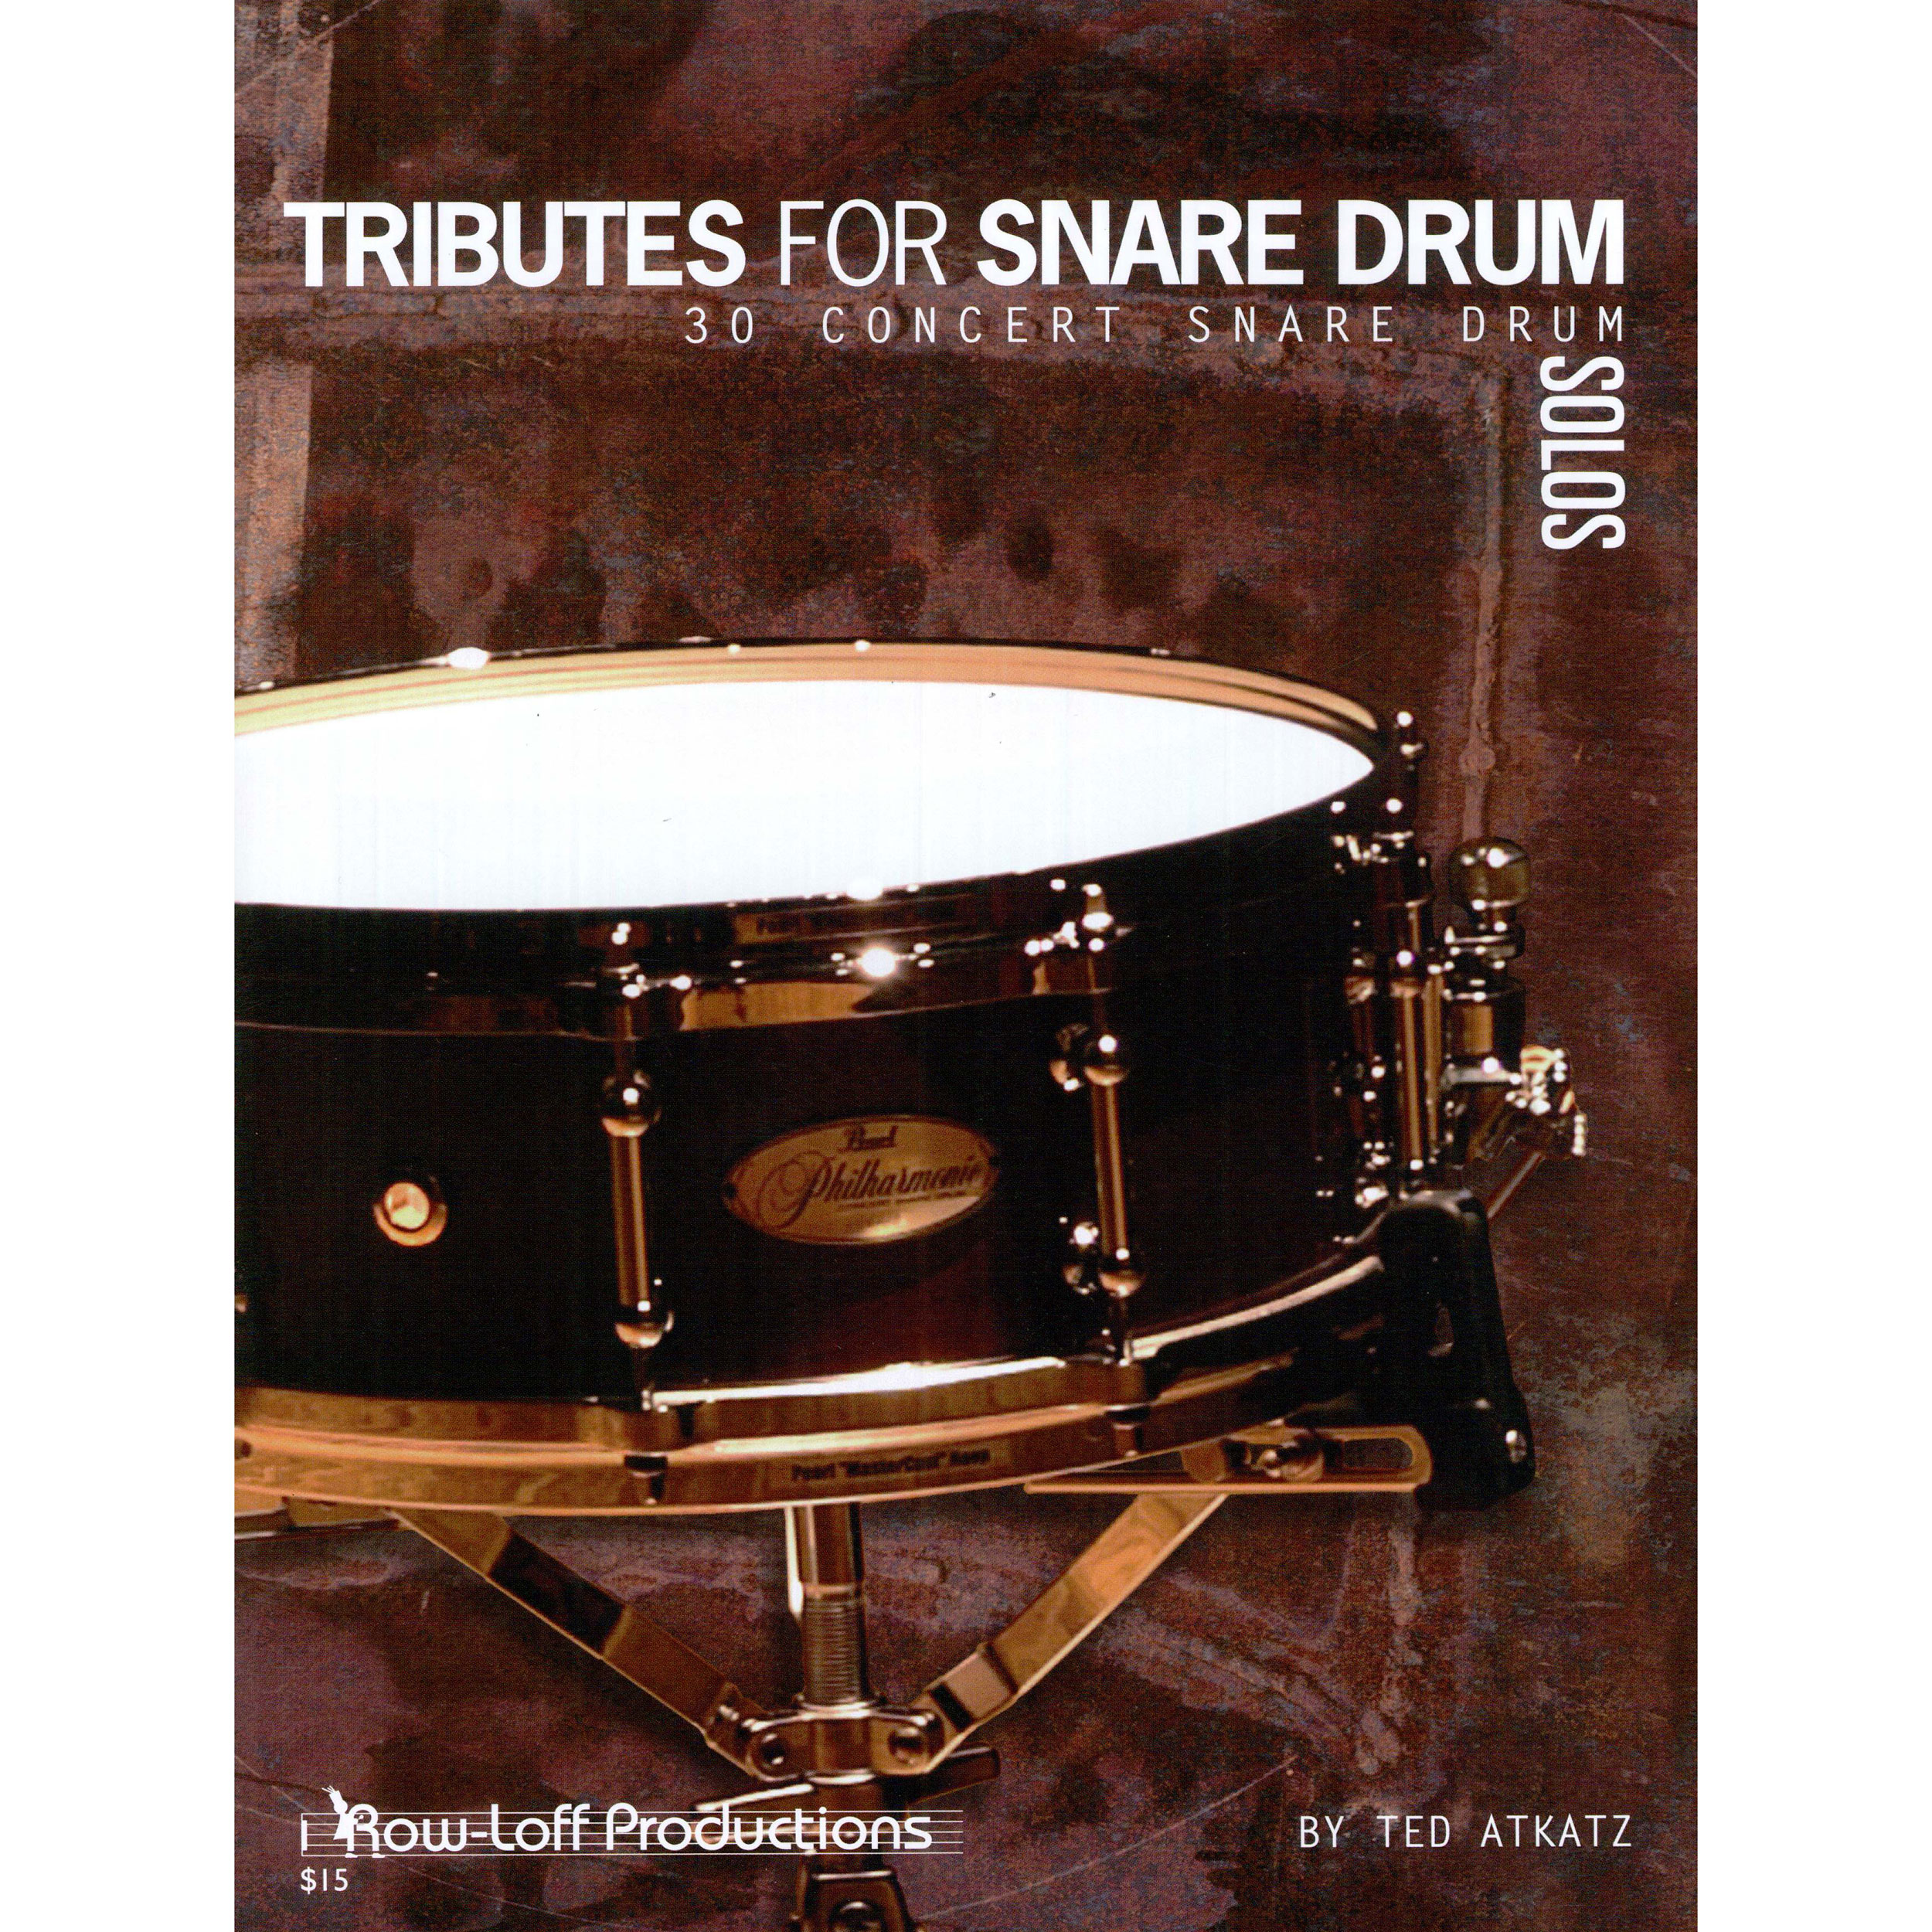 Tributes for Snare Drum by Ted Atkatz